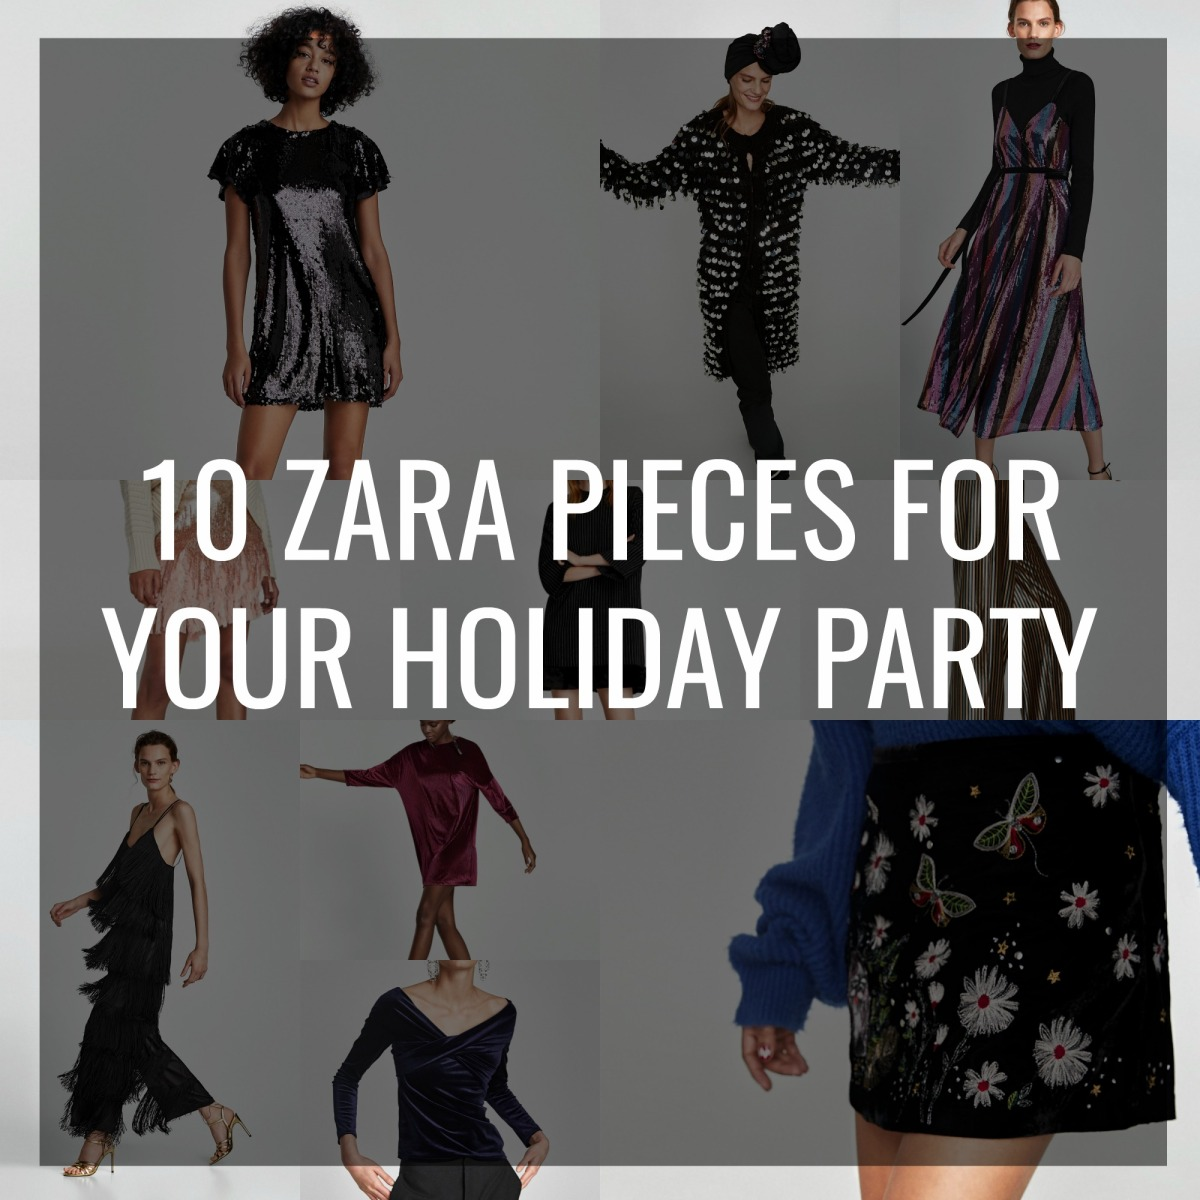 10 Zara Pieces for Your HolidayParty